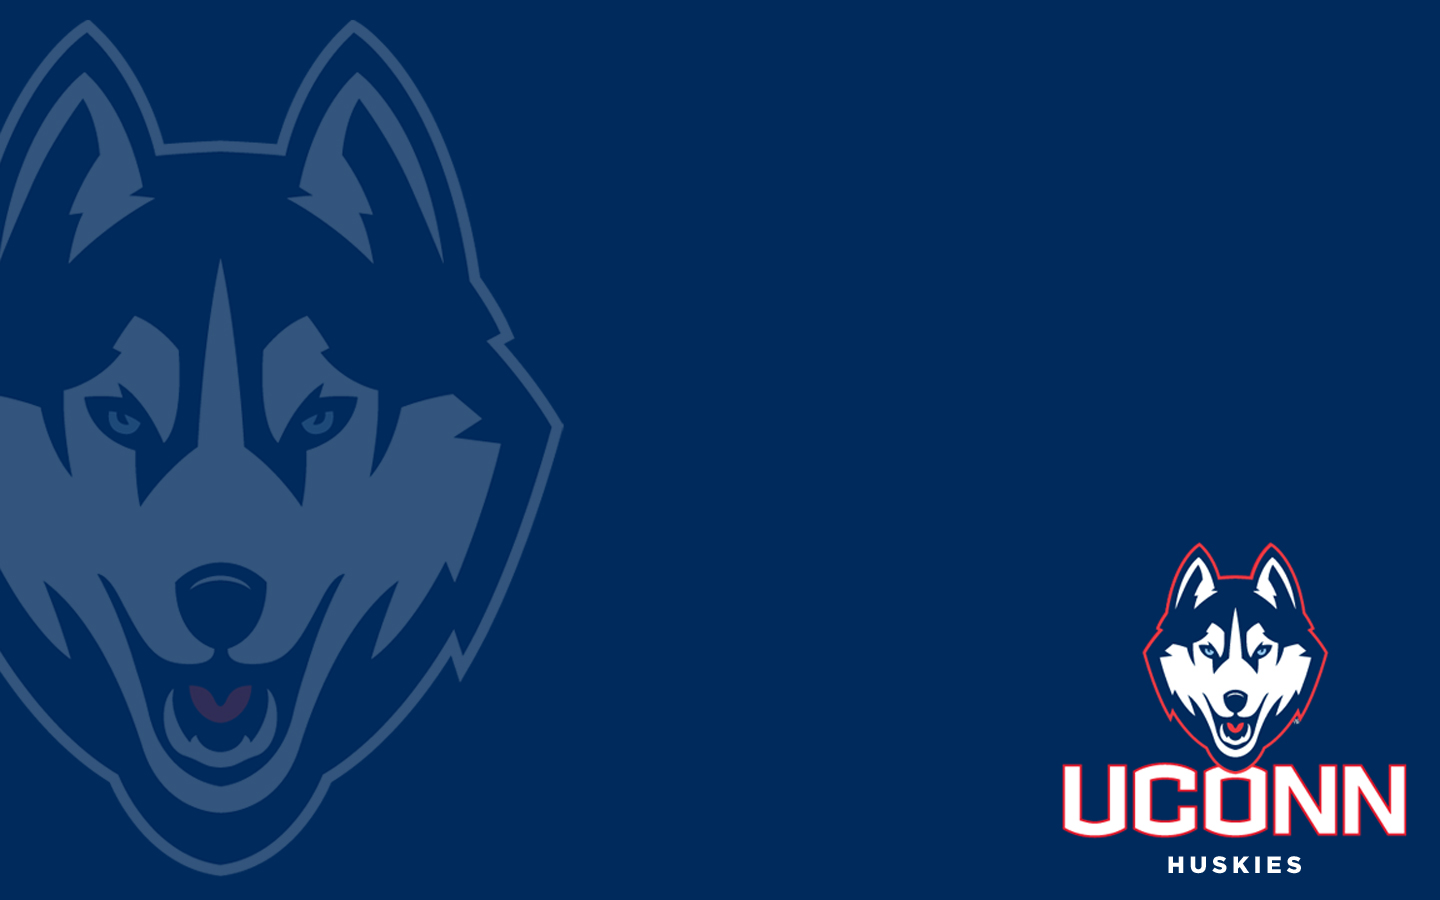 UCONNHUSKIESCOM University of Connecticut Huskies Official 1440x900